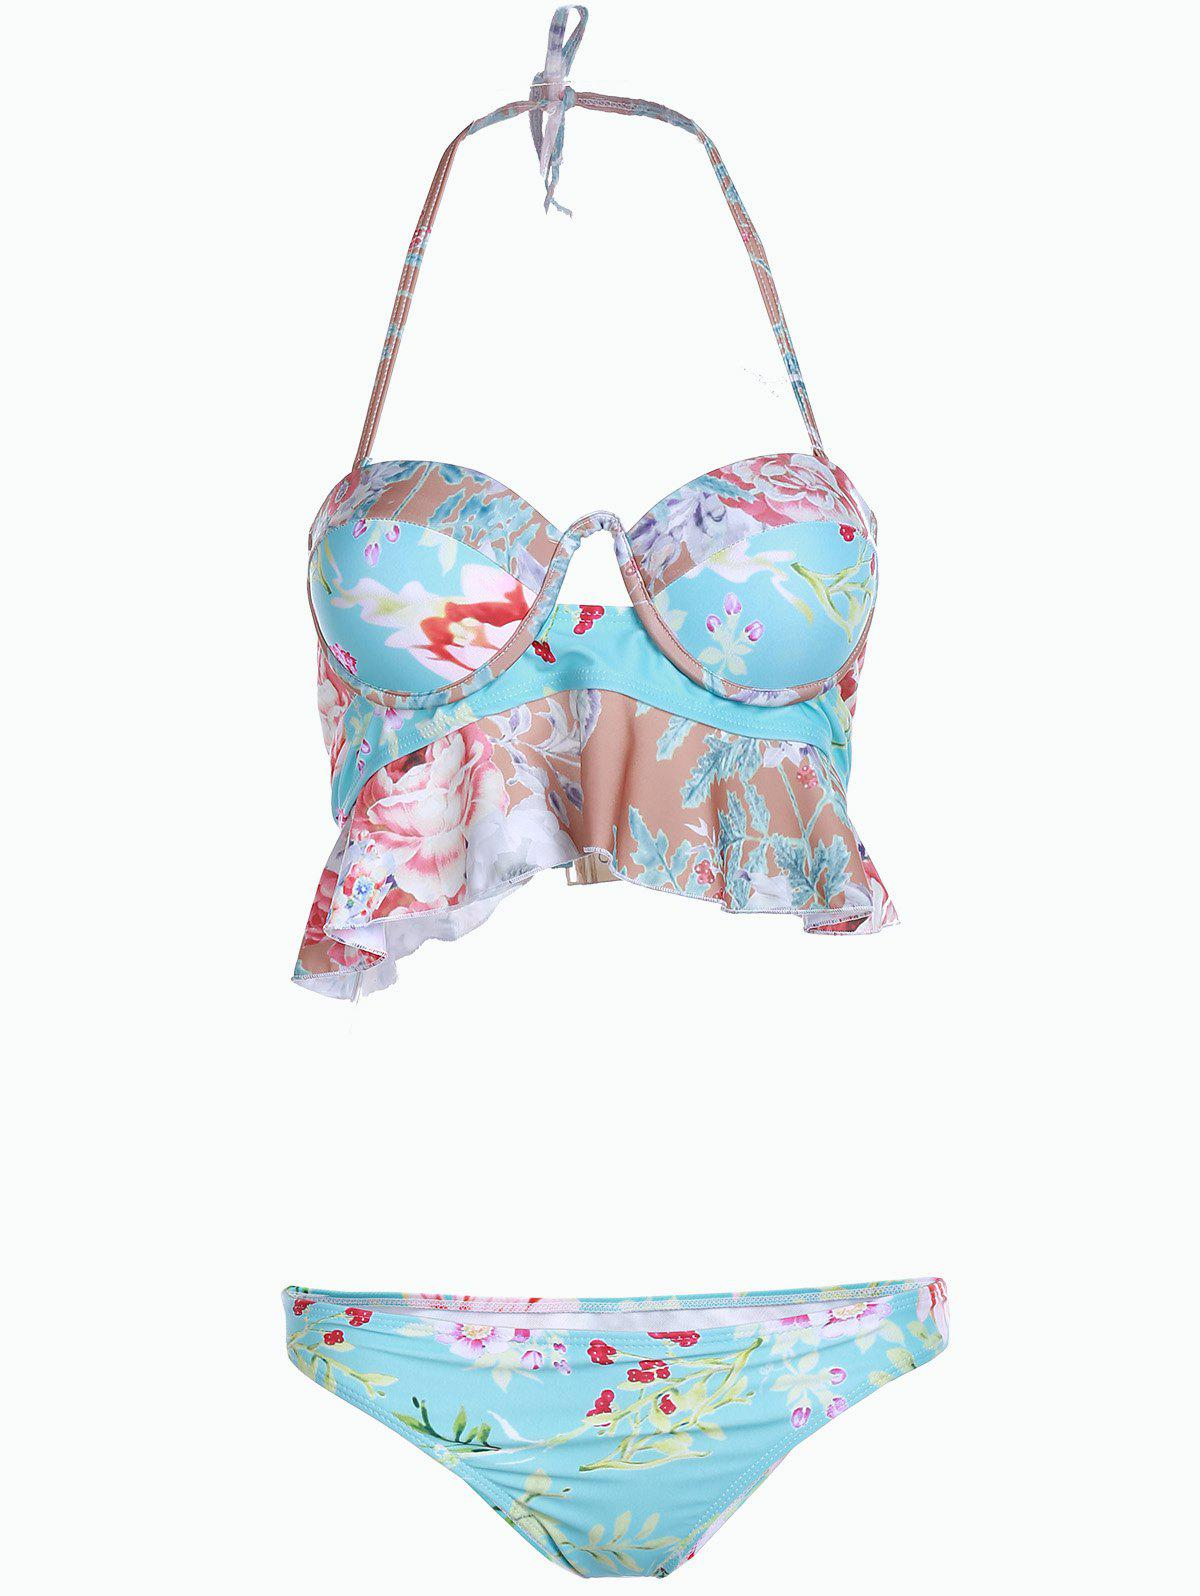 Sweet Floral Print Strapless Hollow Out Two-Piece Women's Swimsuit - TIFFANY BLUE S